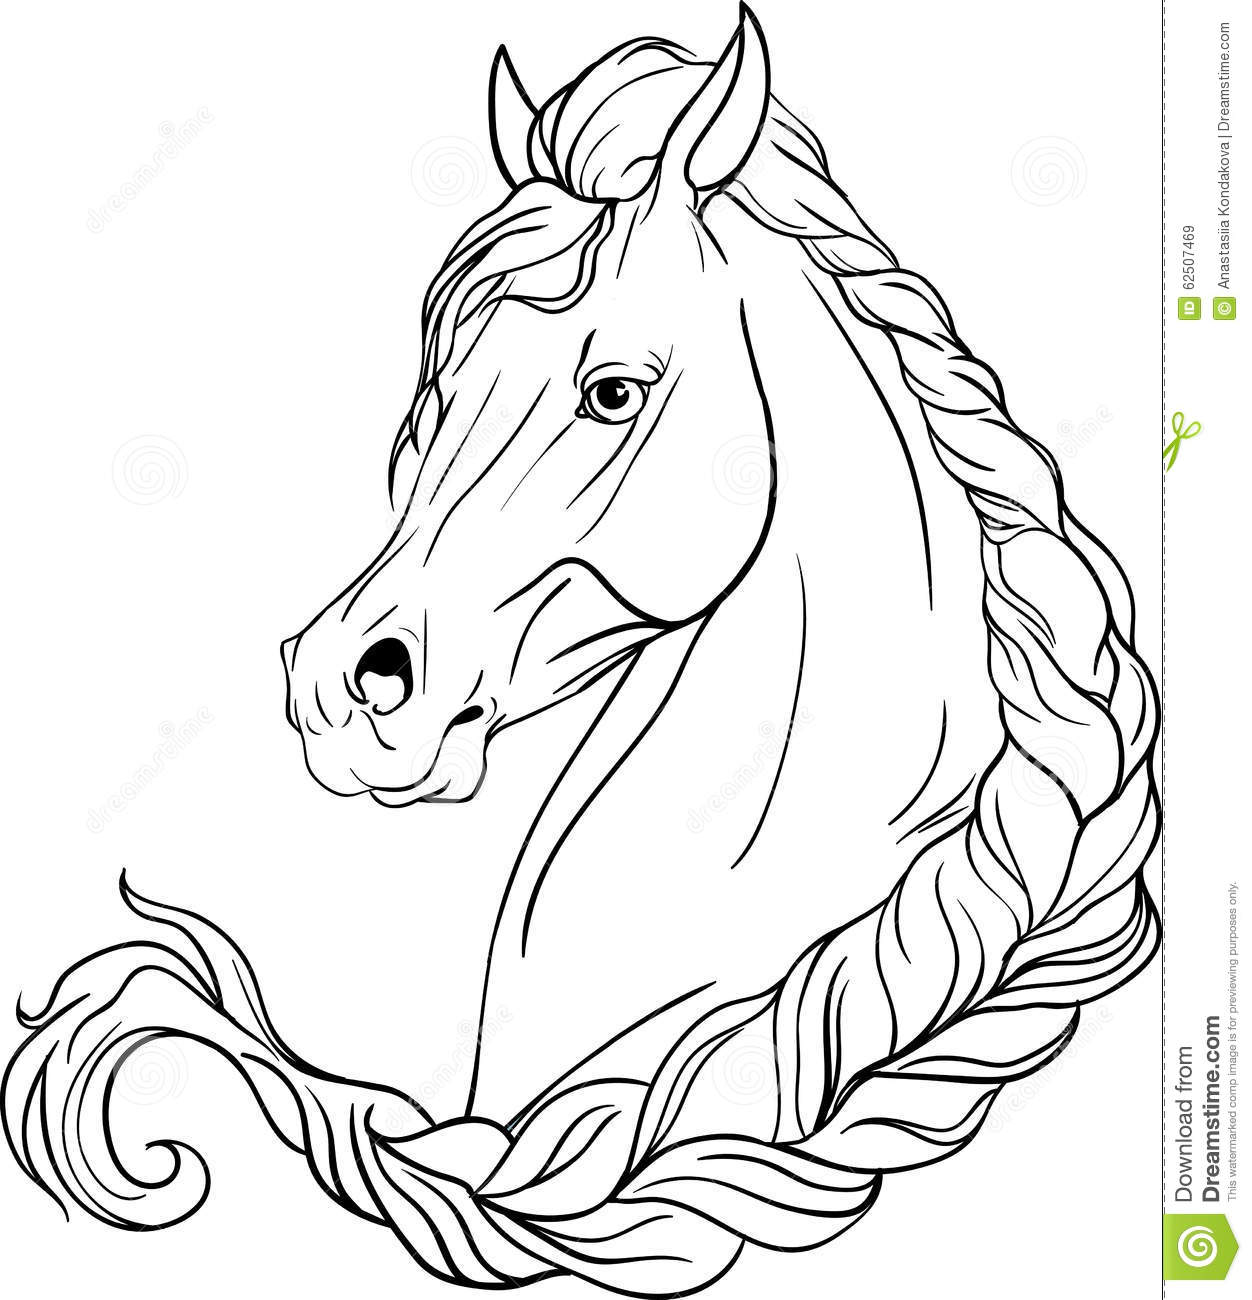 Download Horse Pigtailed Stock Vector Illustration Of Mane Mare